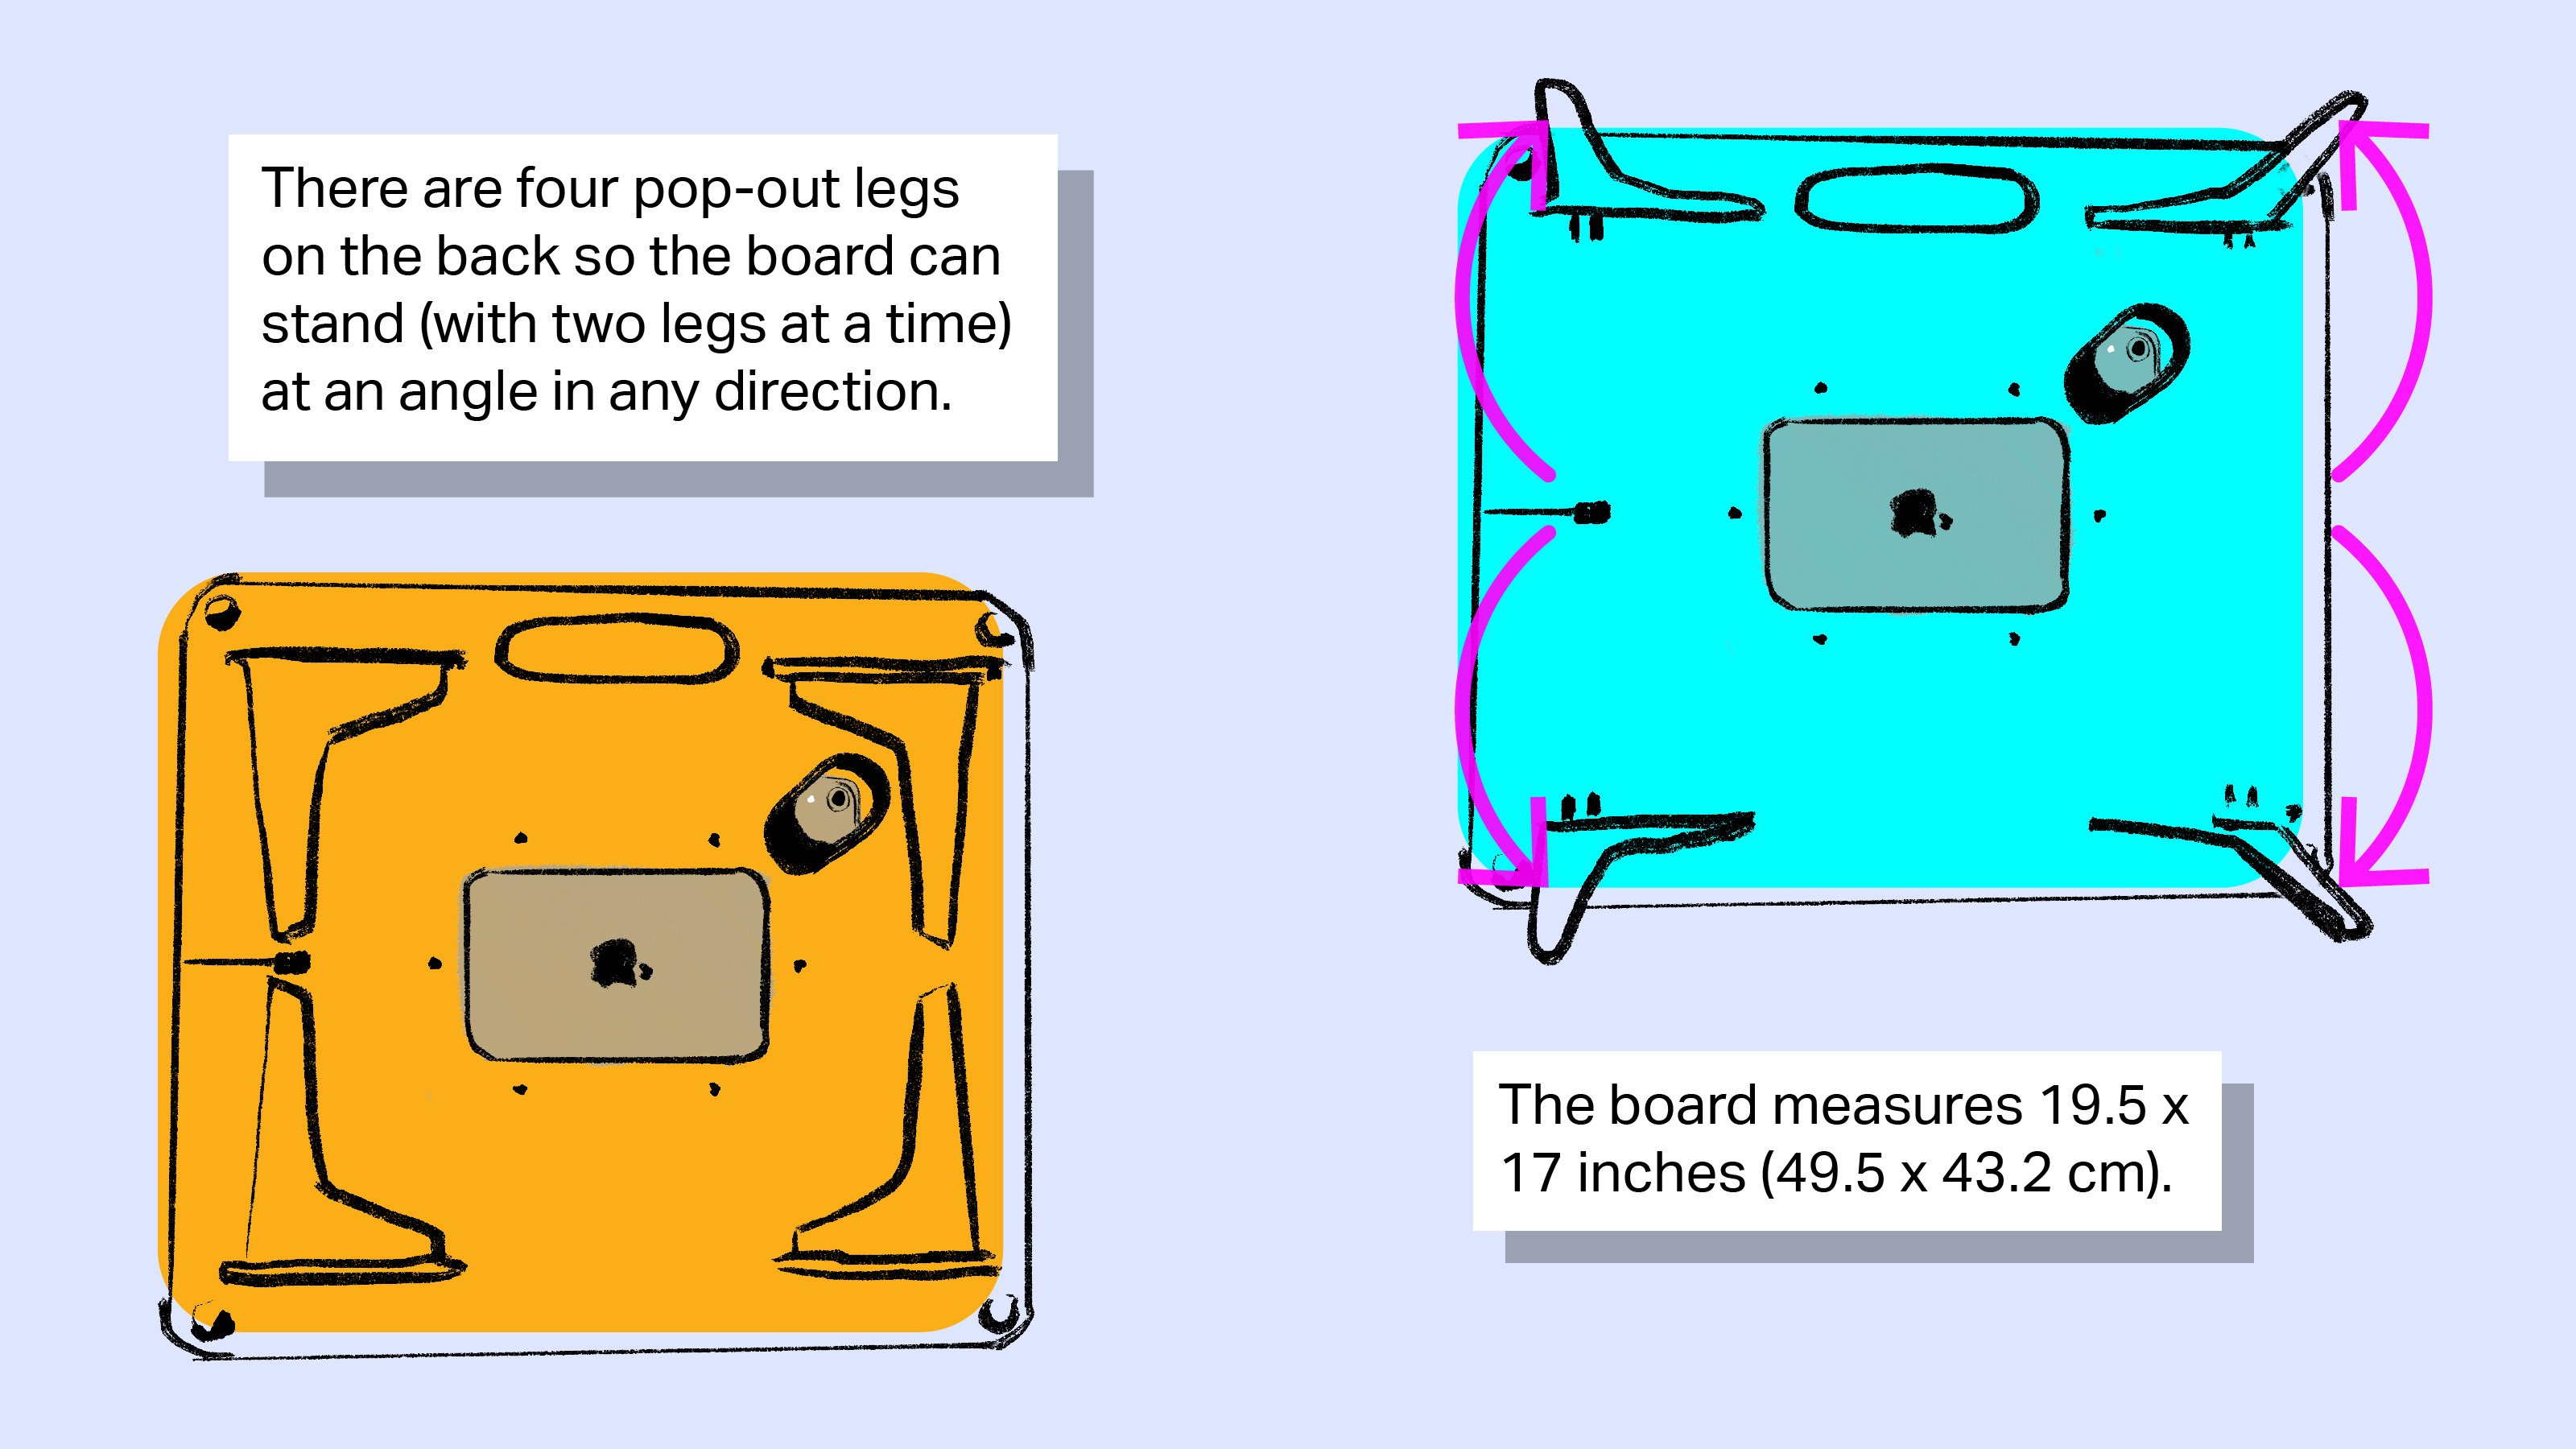 [text] There are four pop-out legs on the back so the board can stand (with two legs at a time) at an angle in any direction. The board measures 19.5 x 17 inches (49.5 x 43.2 cm). [image: two back views of the Sketchboard Pro, one with legs collapsed and one with legs out.]